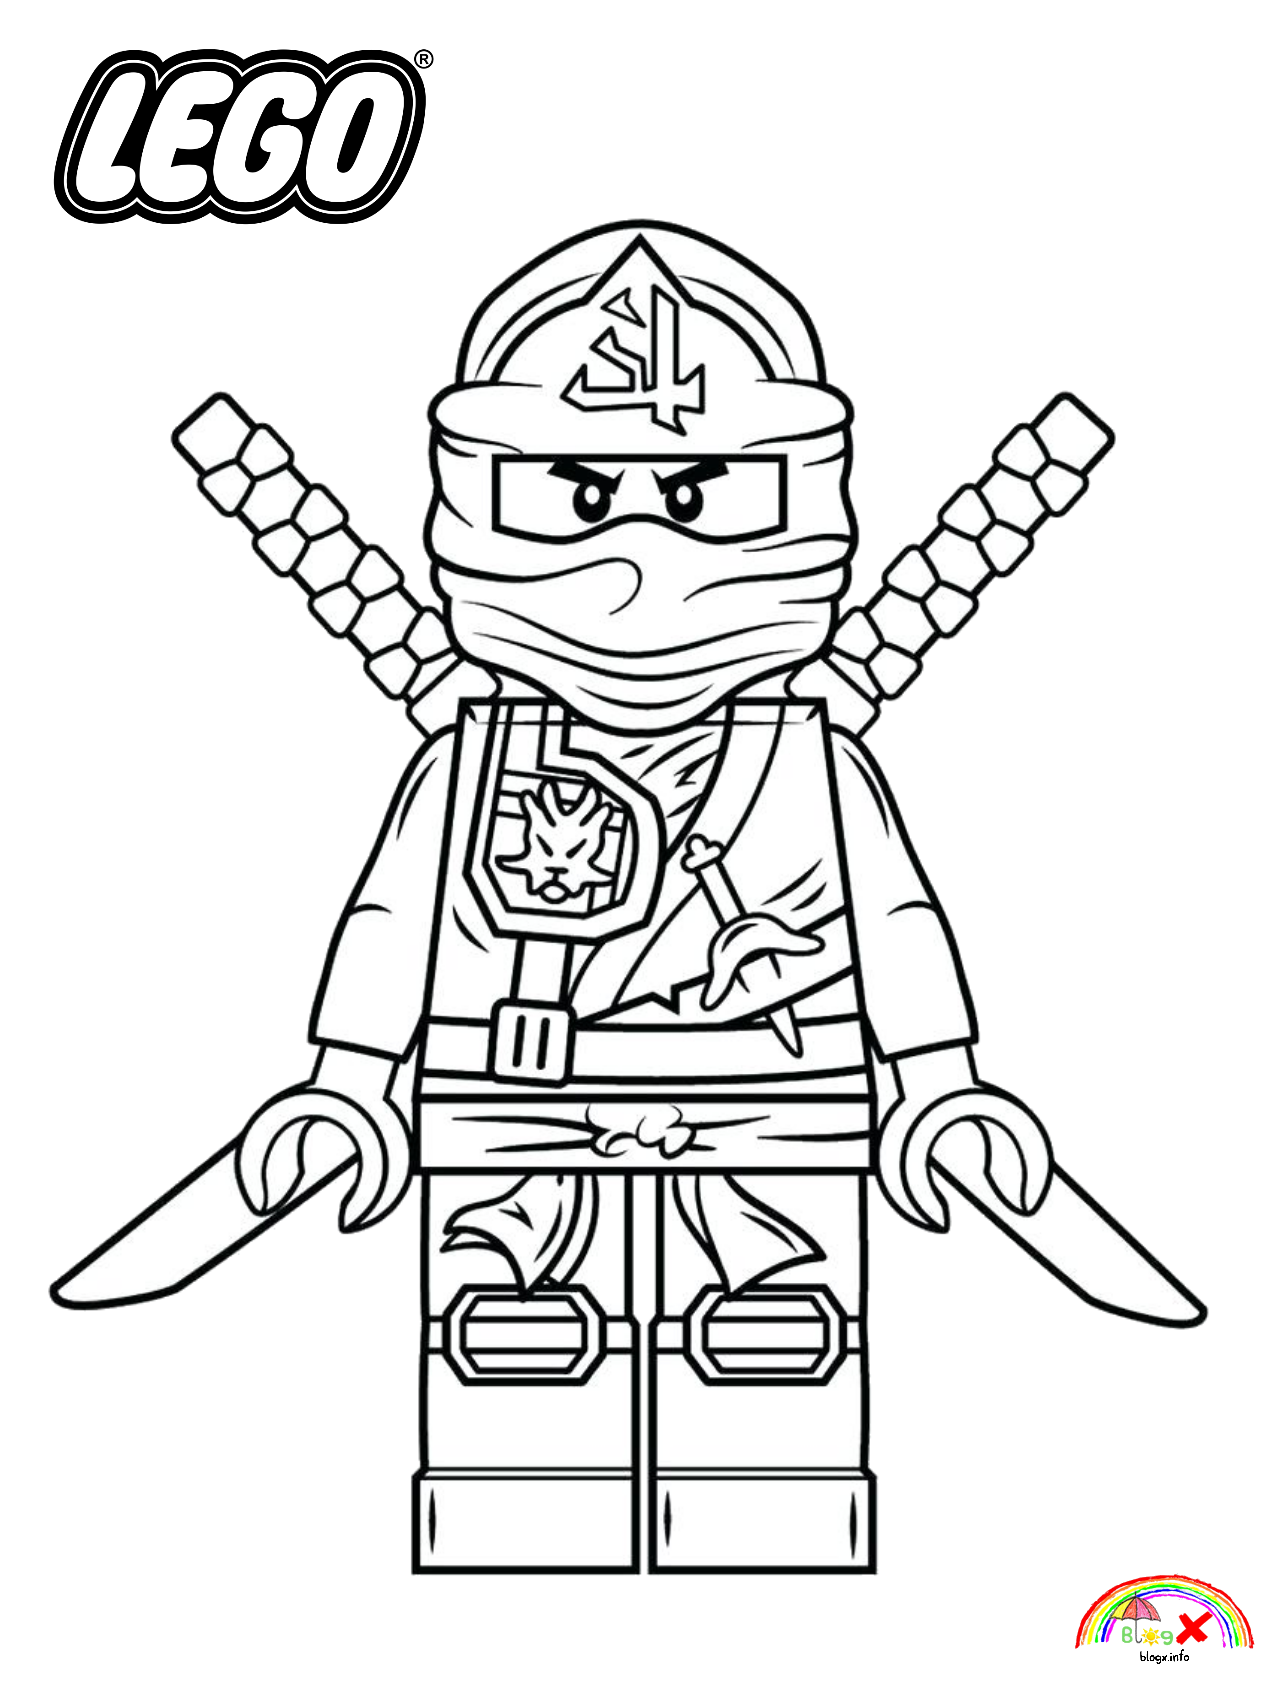 Pin By Athena Tian On You Mustlovethis Lego Coloring Pages Ninjago Coloring Pages Lego Movie Coloring Pages